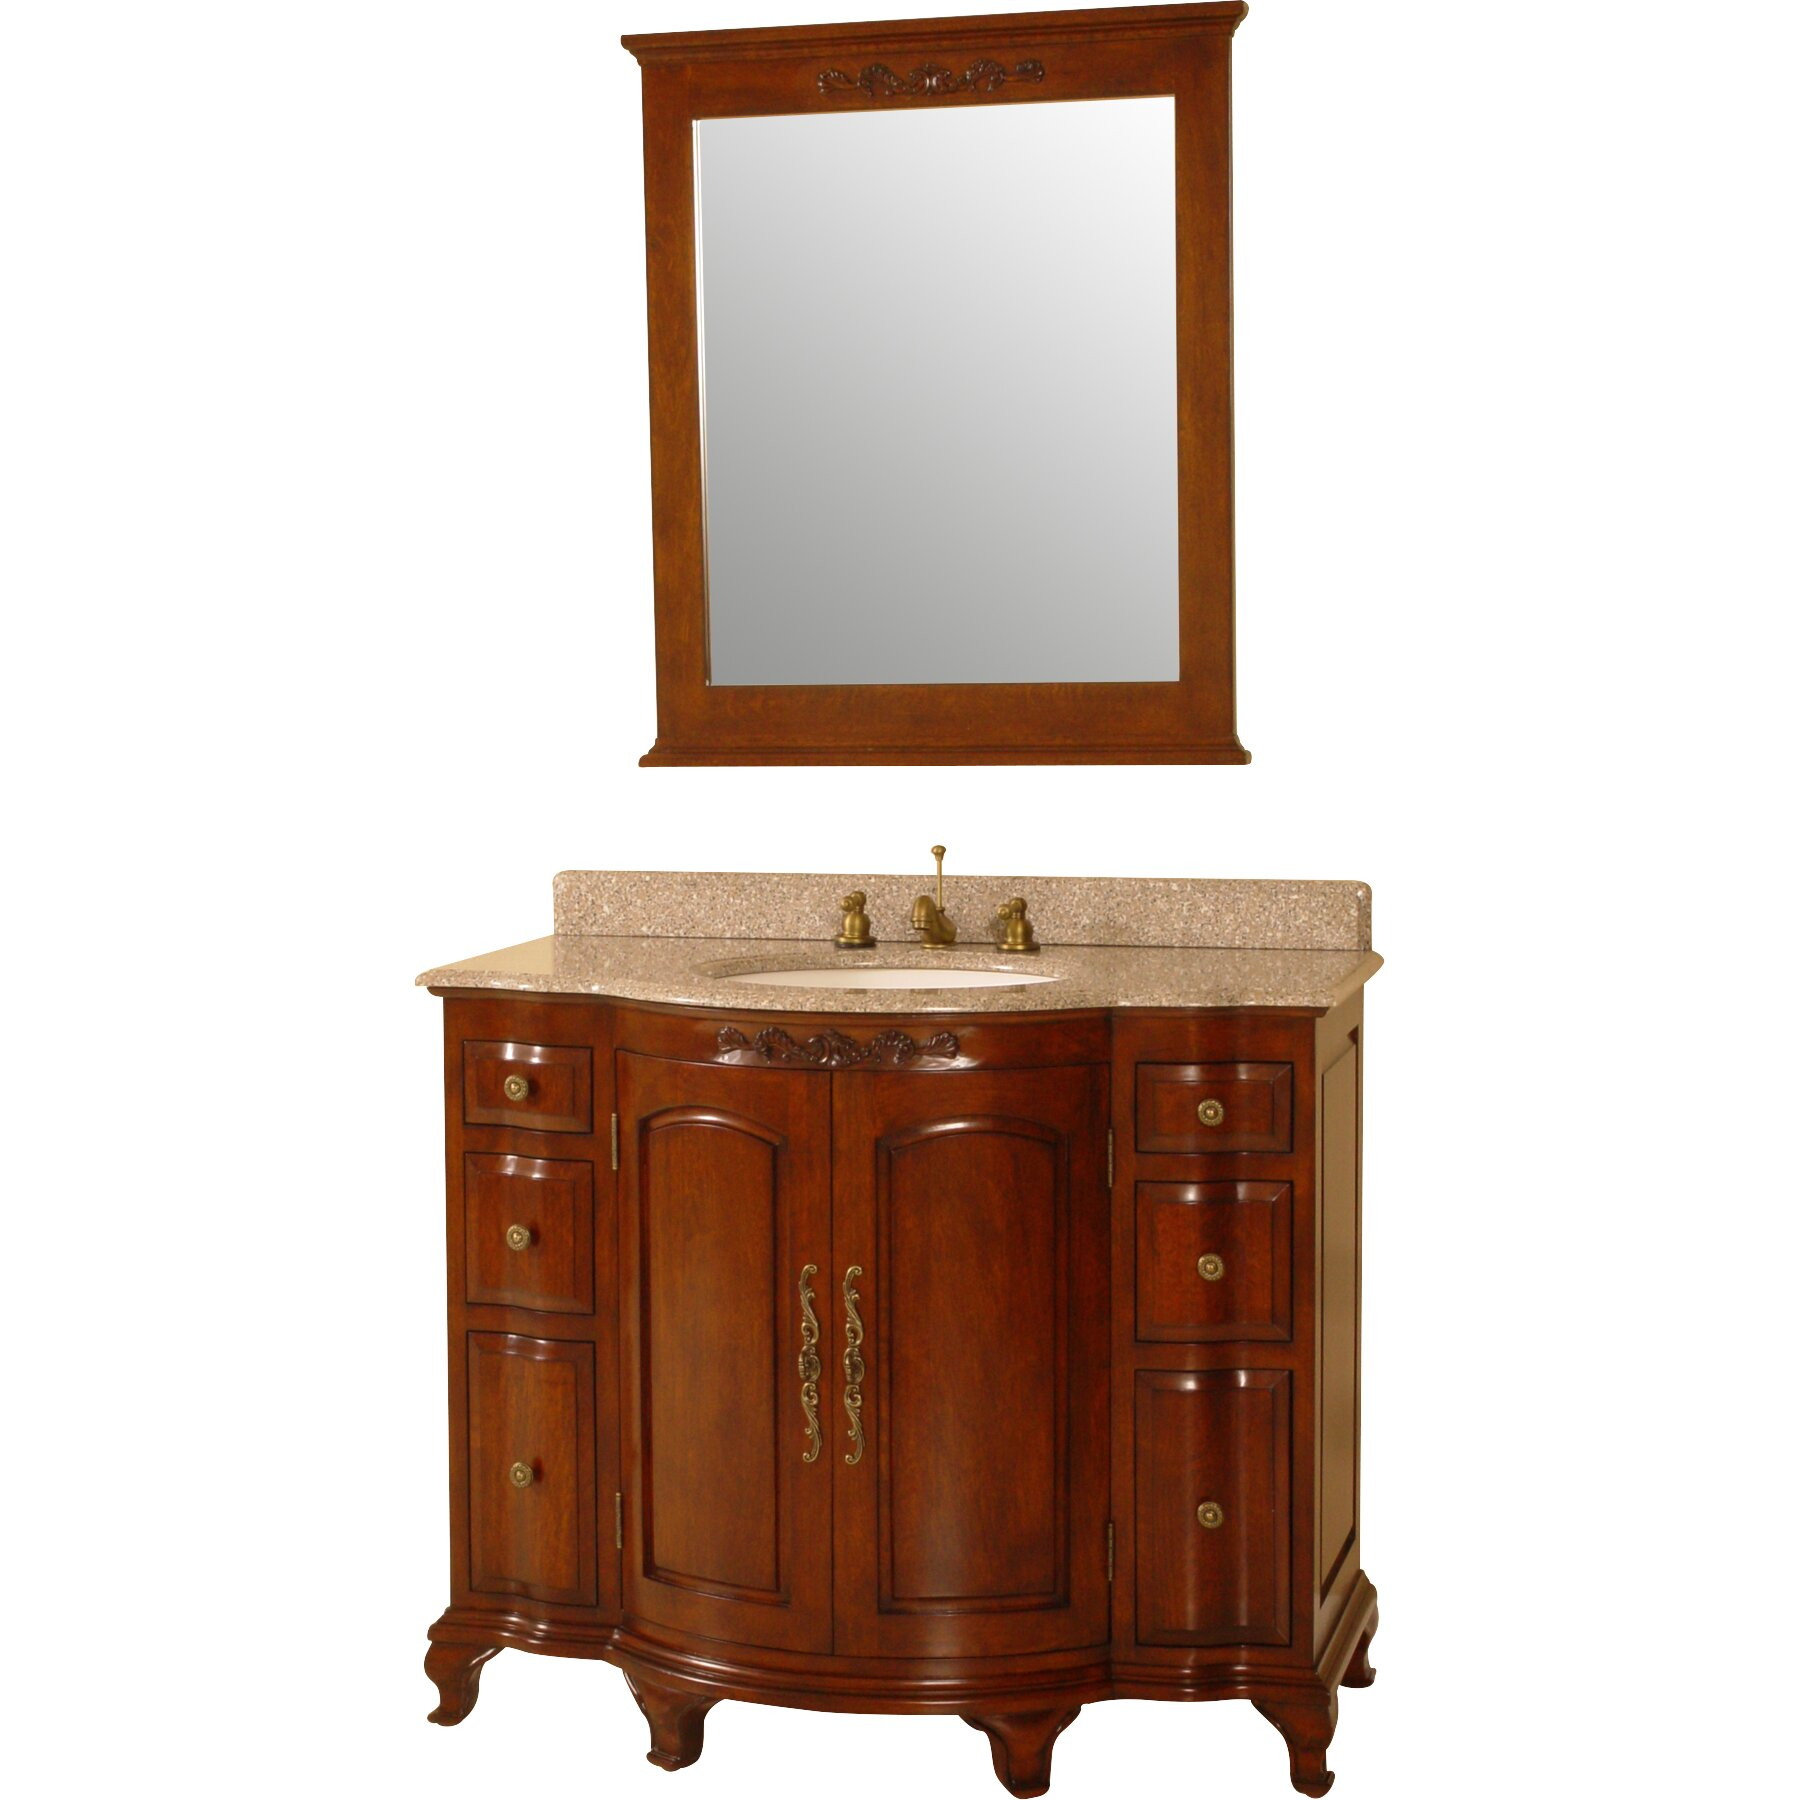 Royal Teak by Lanza Products 42 quot  Single Bathroom Vanity Set. Royal Teak 42  Single Bathroom Vanity Set   Reviews   Wayfair